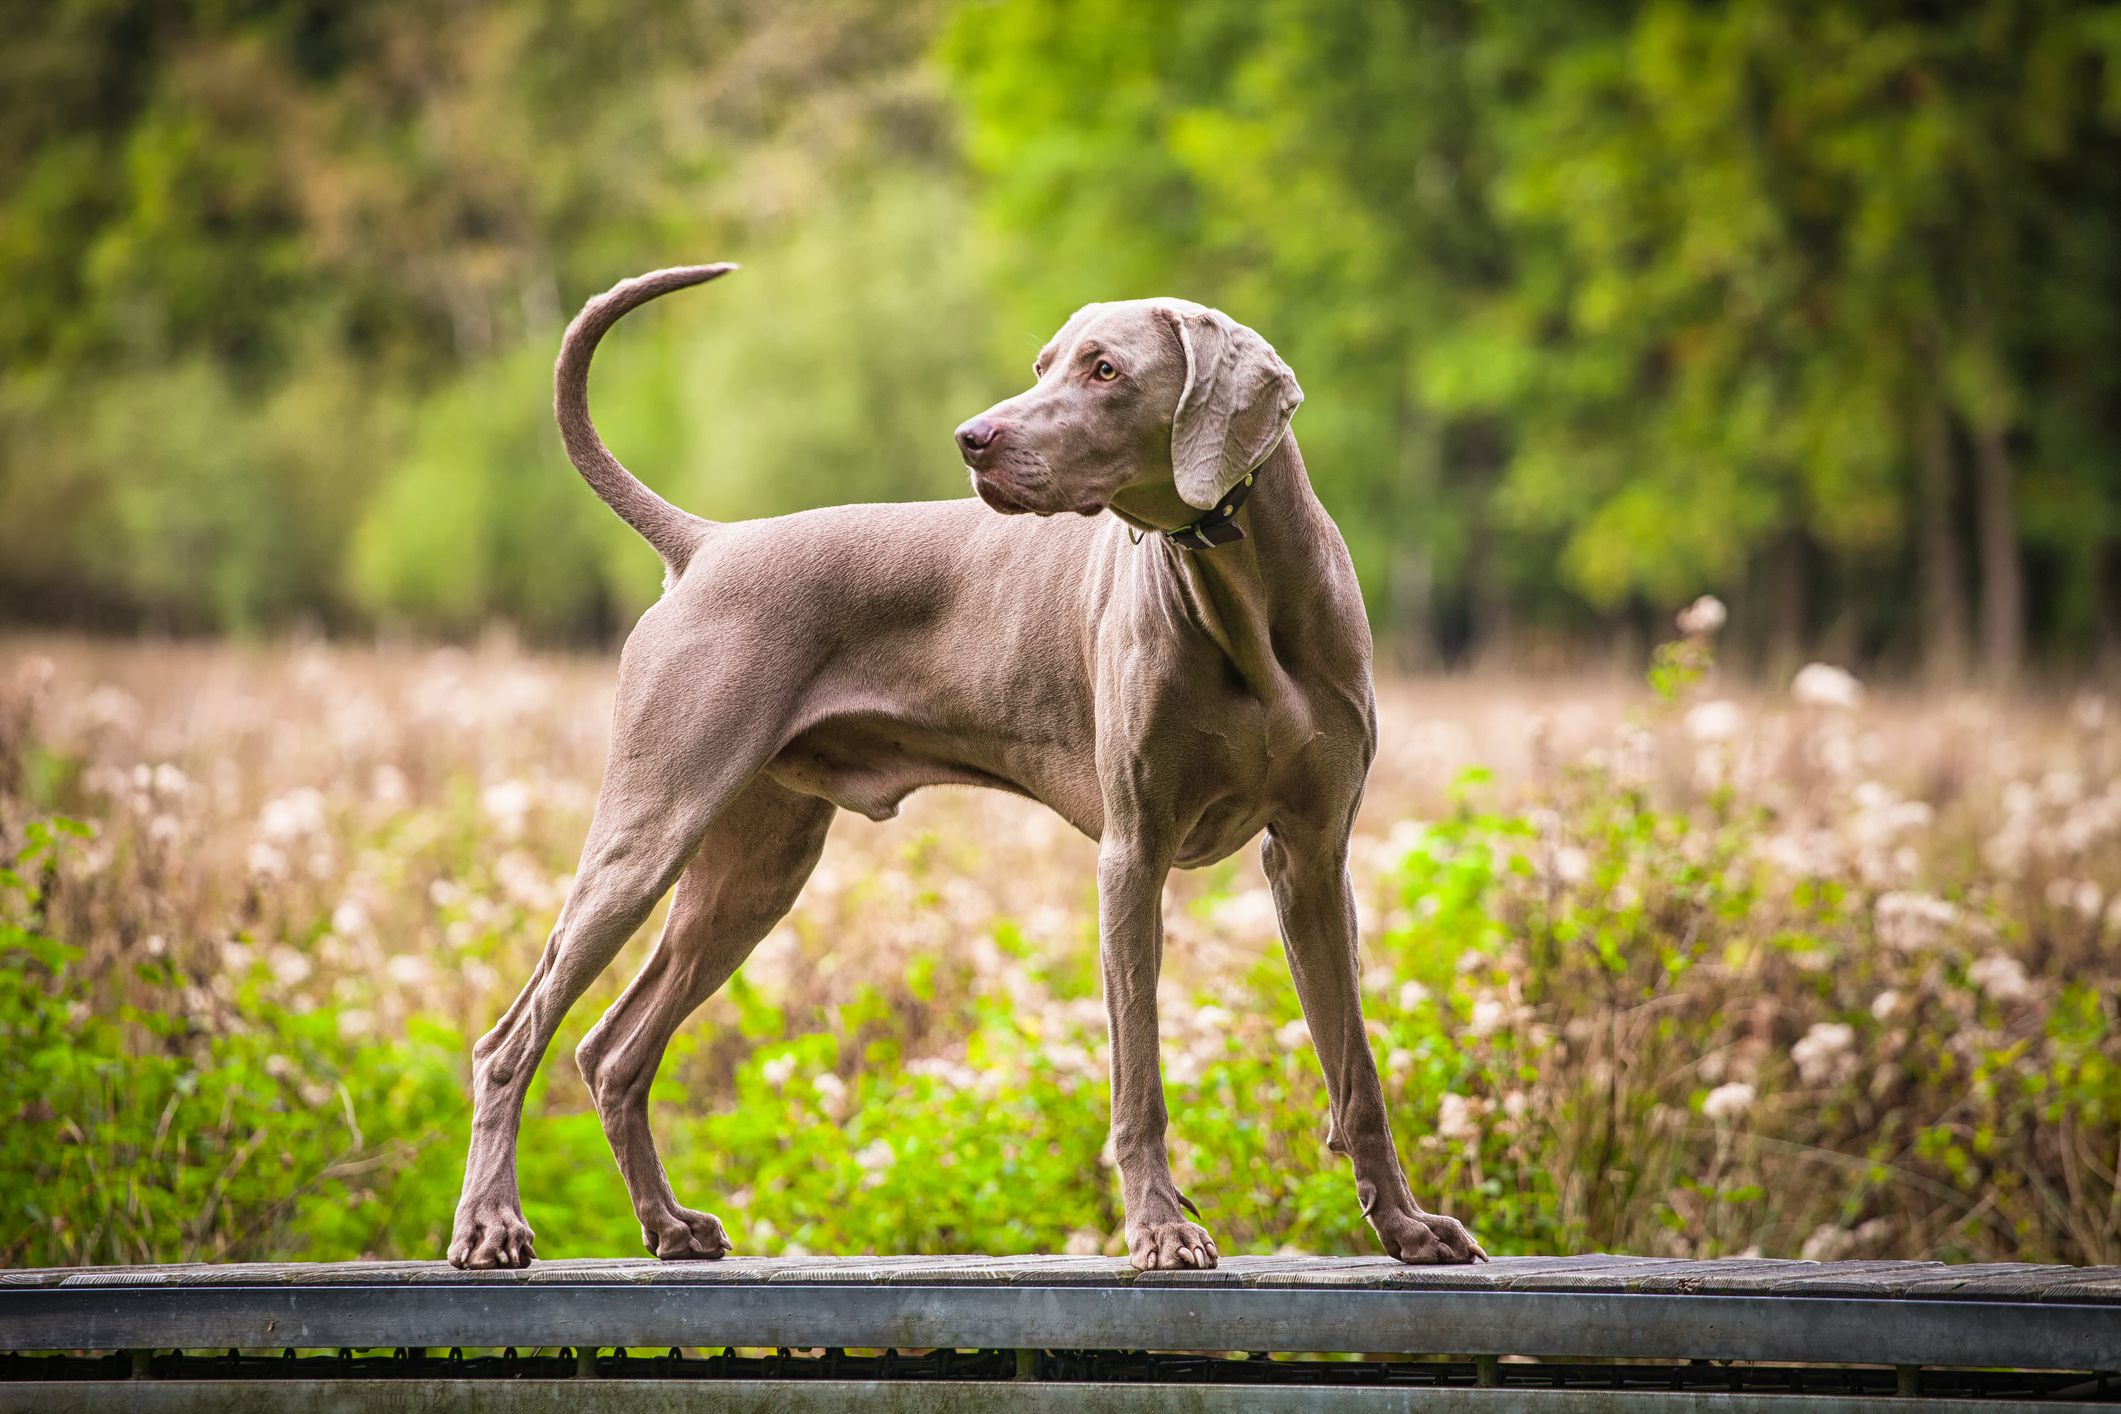 Weimaraner - Full Profile, History, and Care